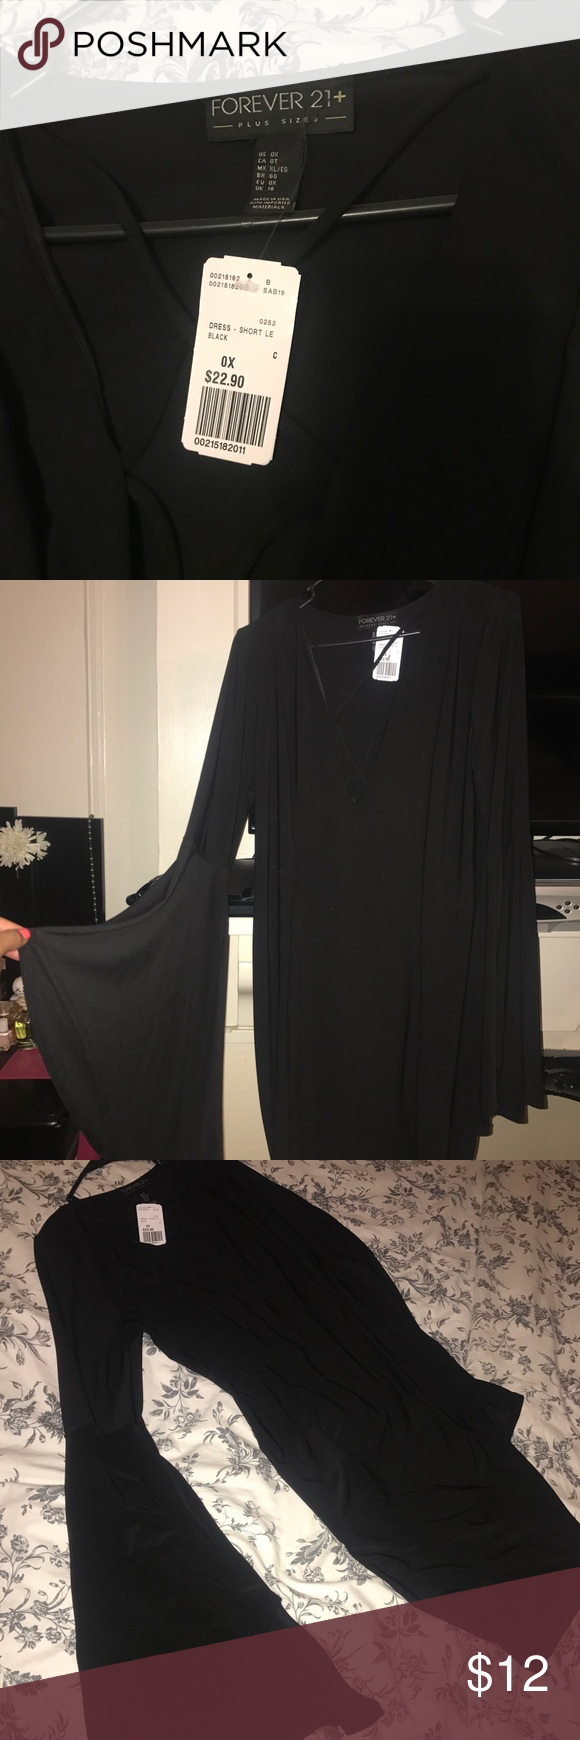 Lace-up bell sleeves dress Black lace-up dress with bell sleeves. Forever 21 Dresses Long Sleeve